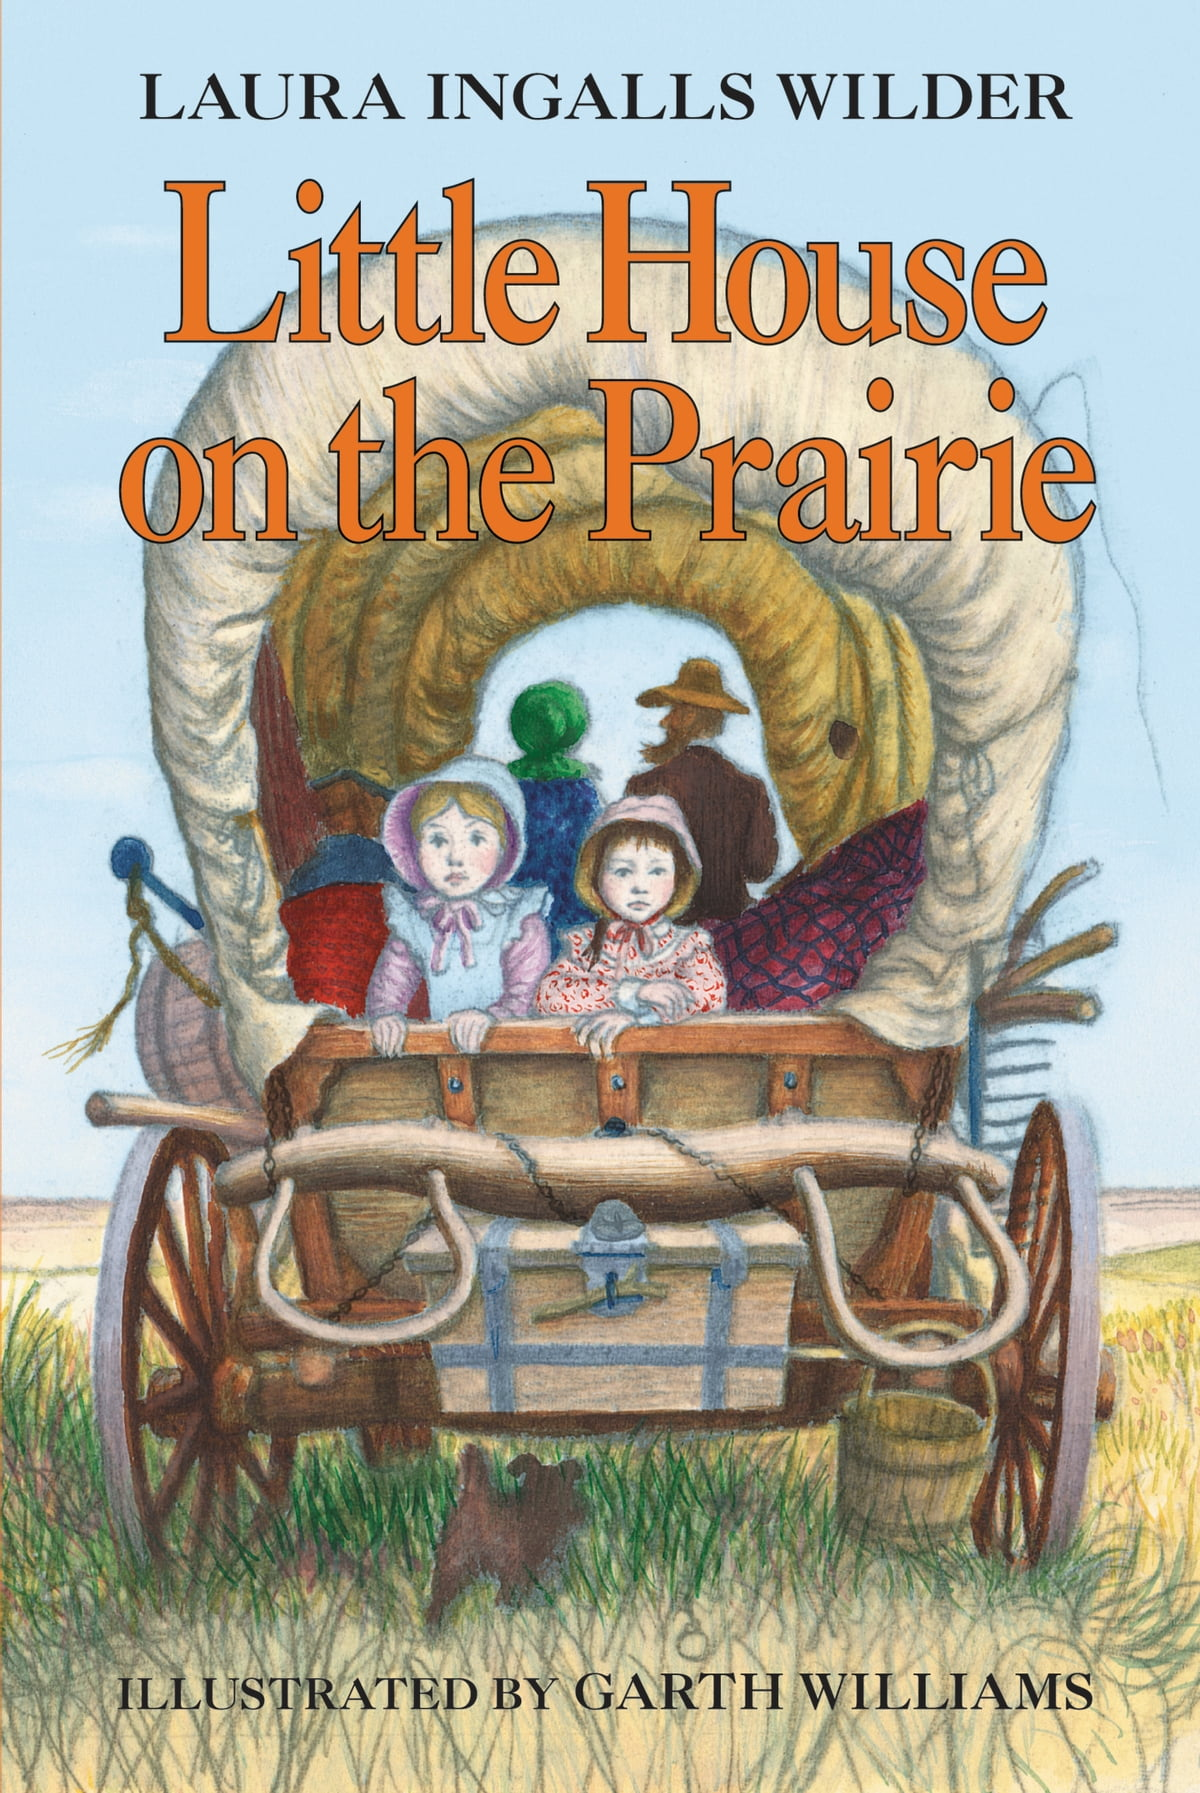 Little House On The Prairie Ebook By Laura Ingalls Wilder  9780062094889   Rakuten Kobo